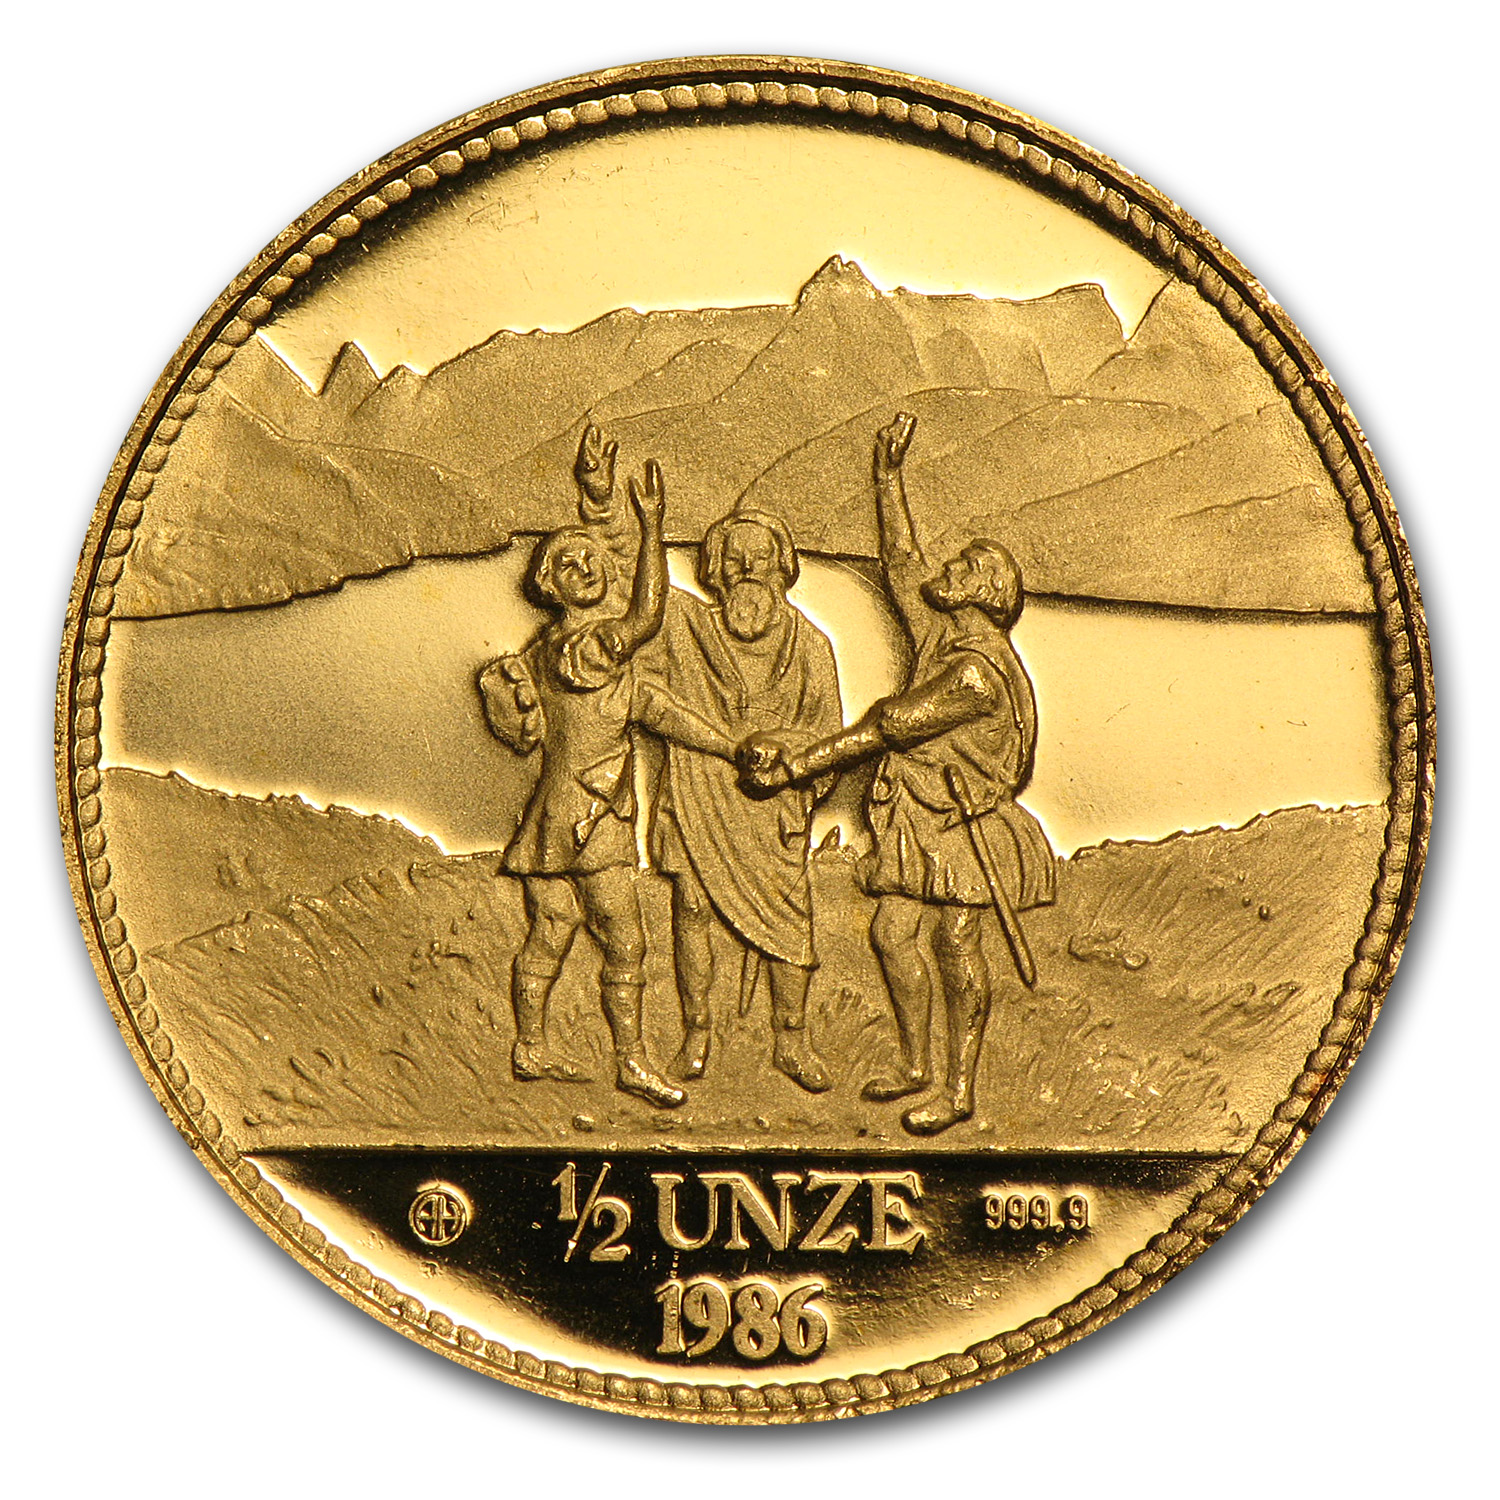 1986-1989 Switzerland 1/2 Unze Gold